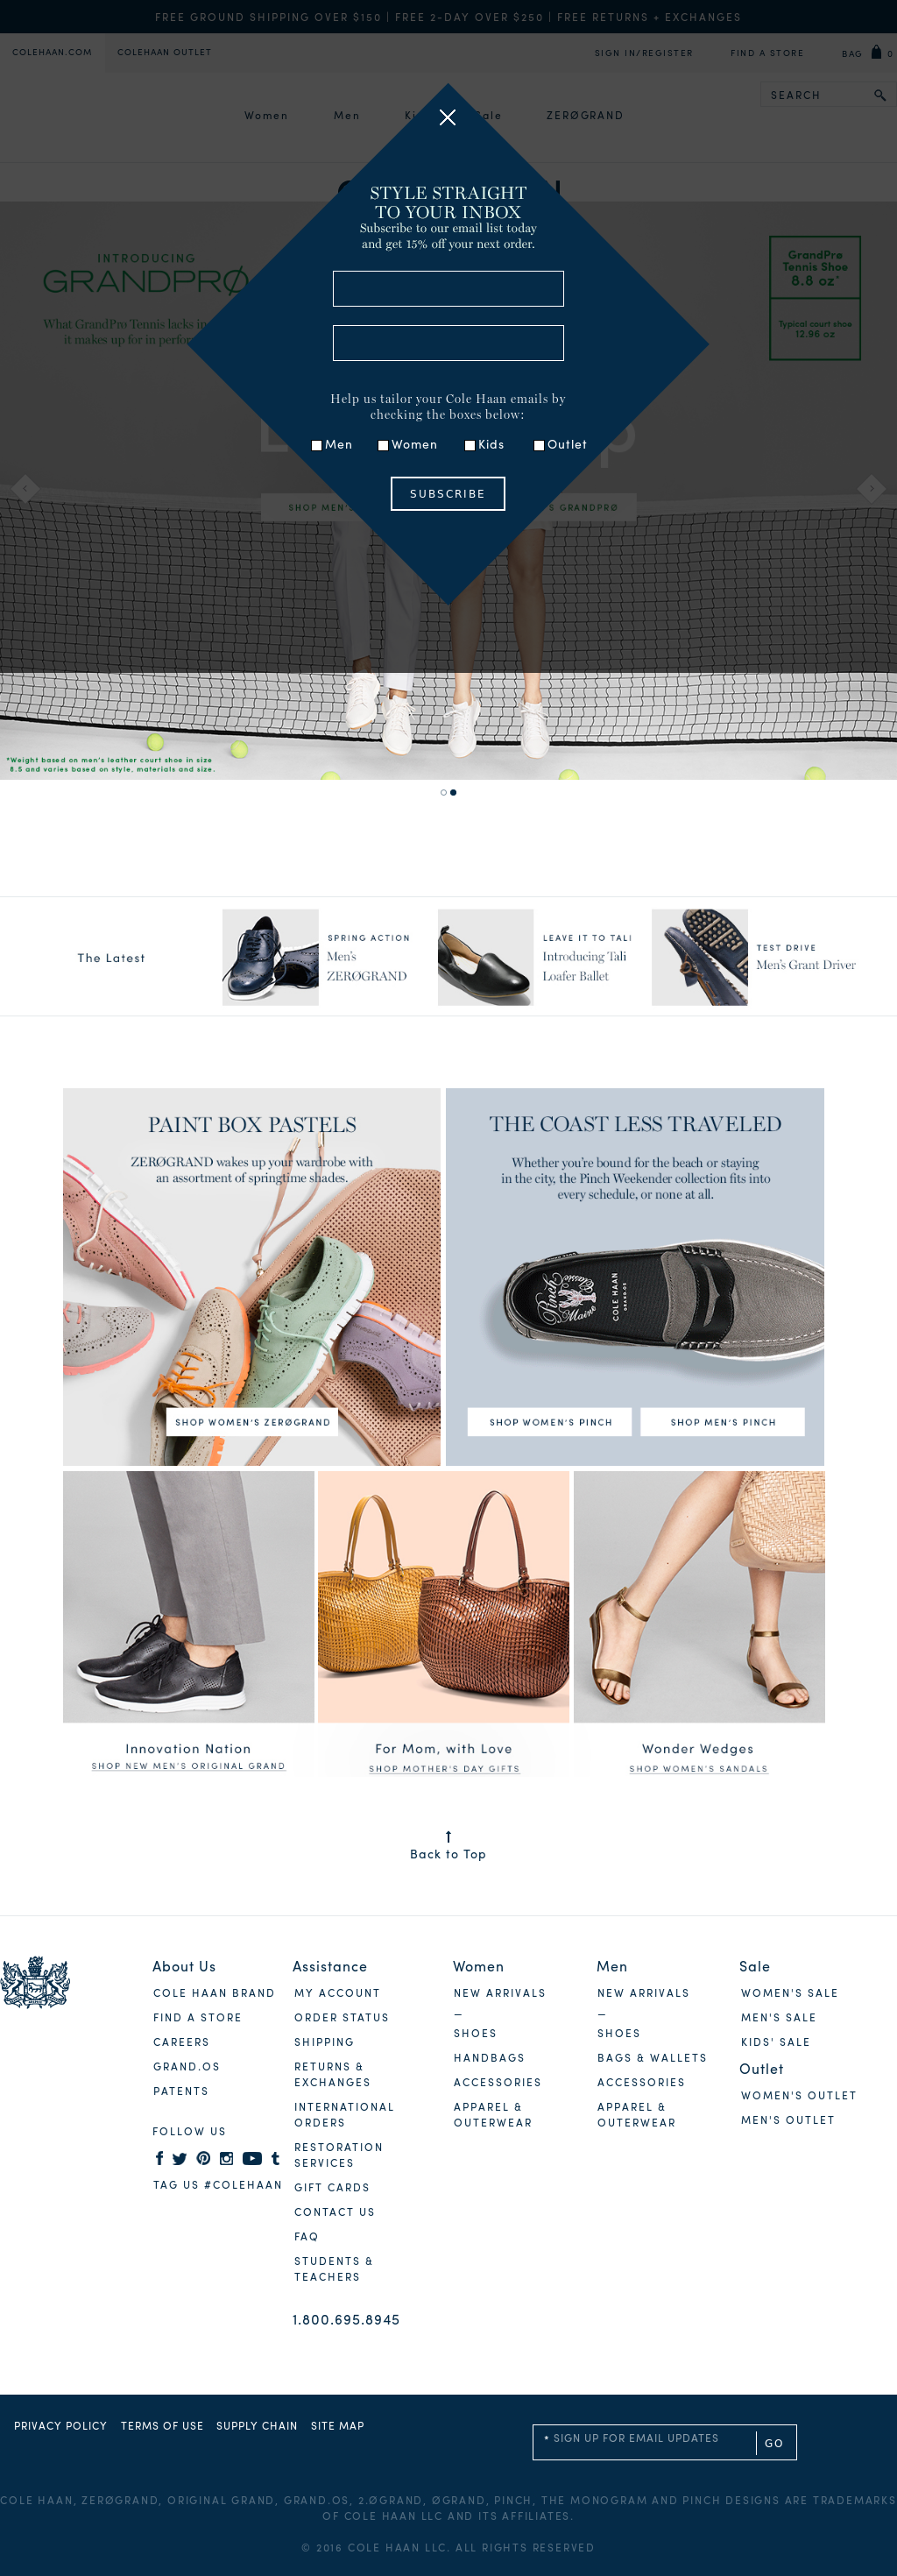 Cole Haan Competitors, Revenue and Employees - Owler Company Profile